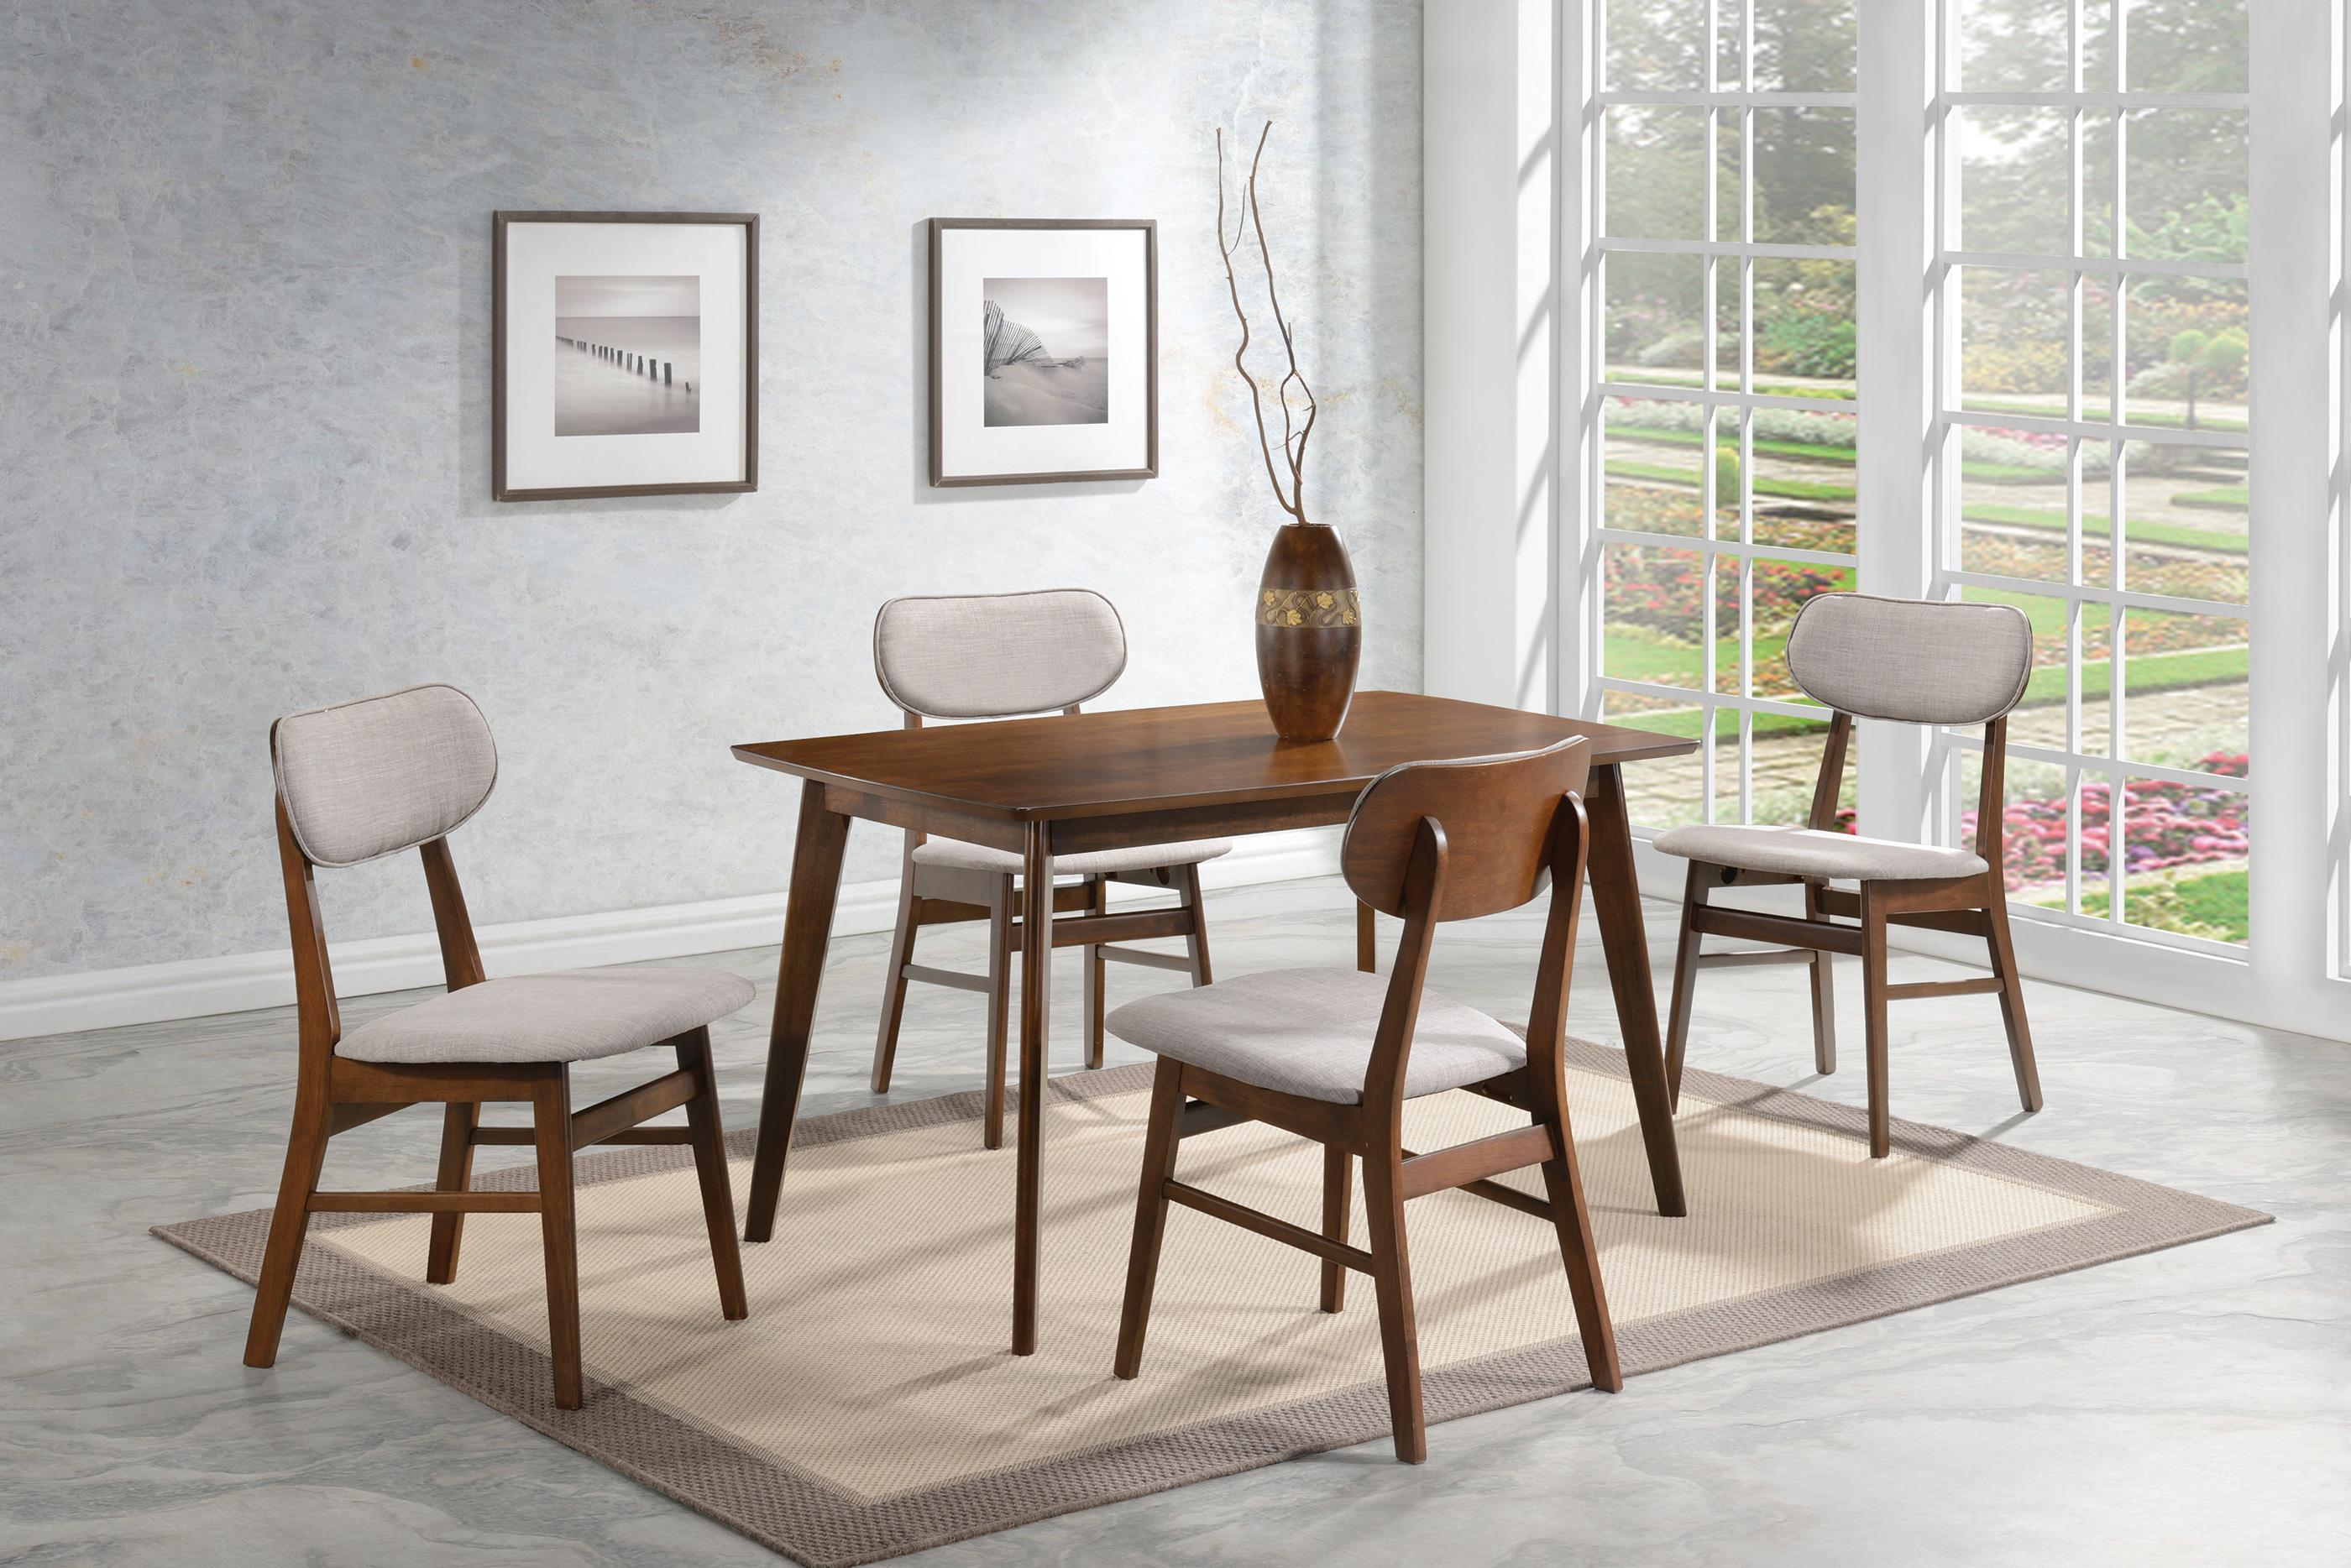 Coaster Kersey Dining Side Chairs With Curved Backs   Coaster Fine Furniture